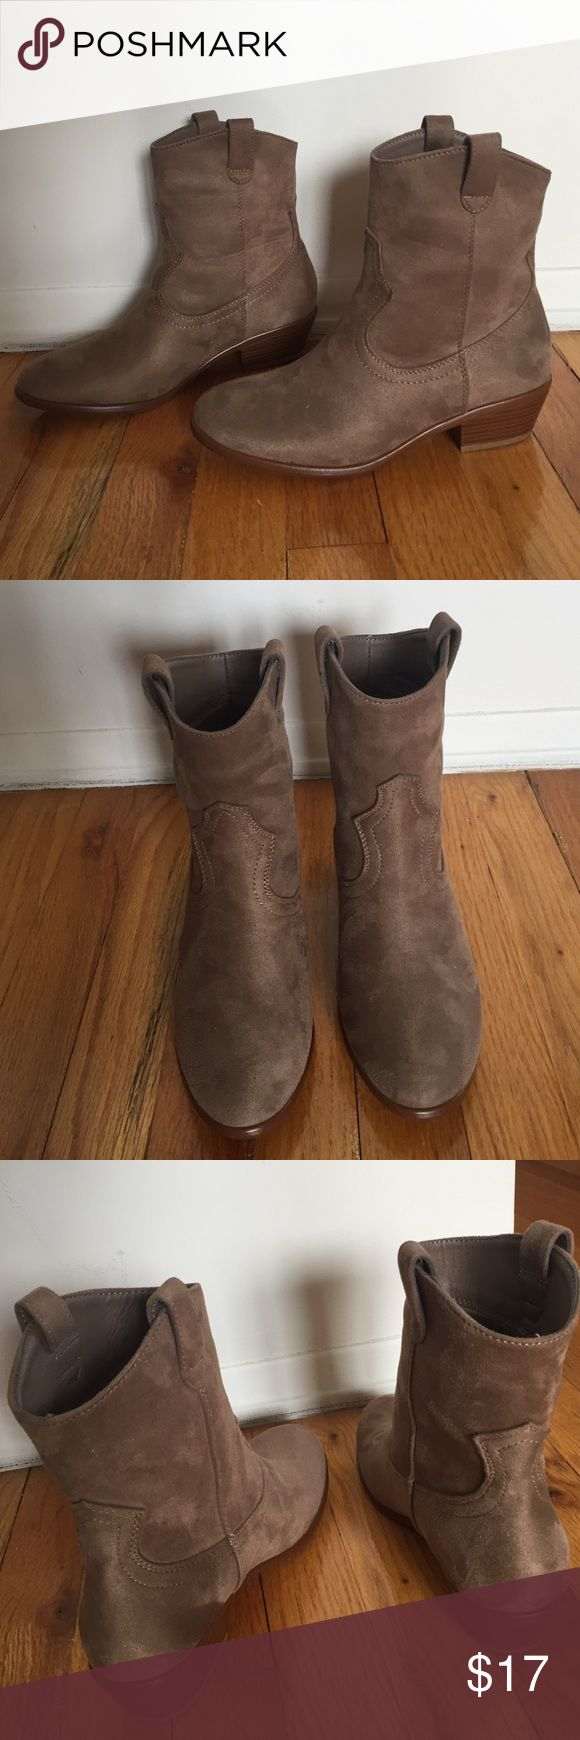 NWOT Suede Cowboy Boots Brand new, never worn! Light tan colored faux suede cowboy styled Ankle Booties. Lightweight, slip on. Short wooden heel. Brand is Wild Diva, purchased from mandee. Size 6 and 7 available. Wild Diva Shoes Ankle Boots & Booties